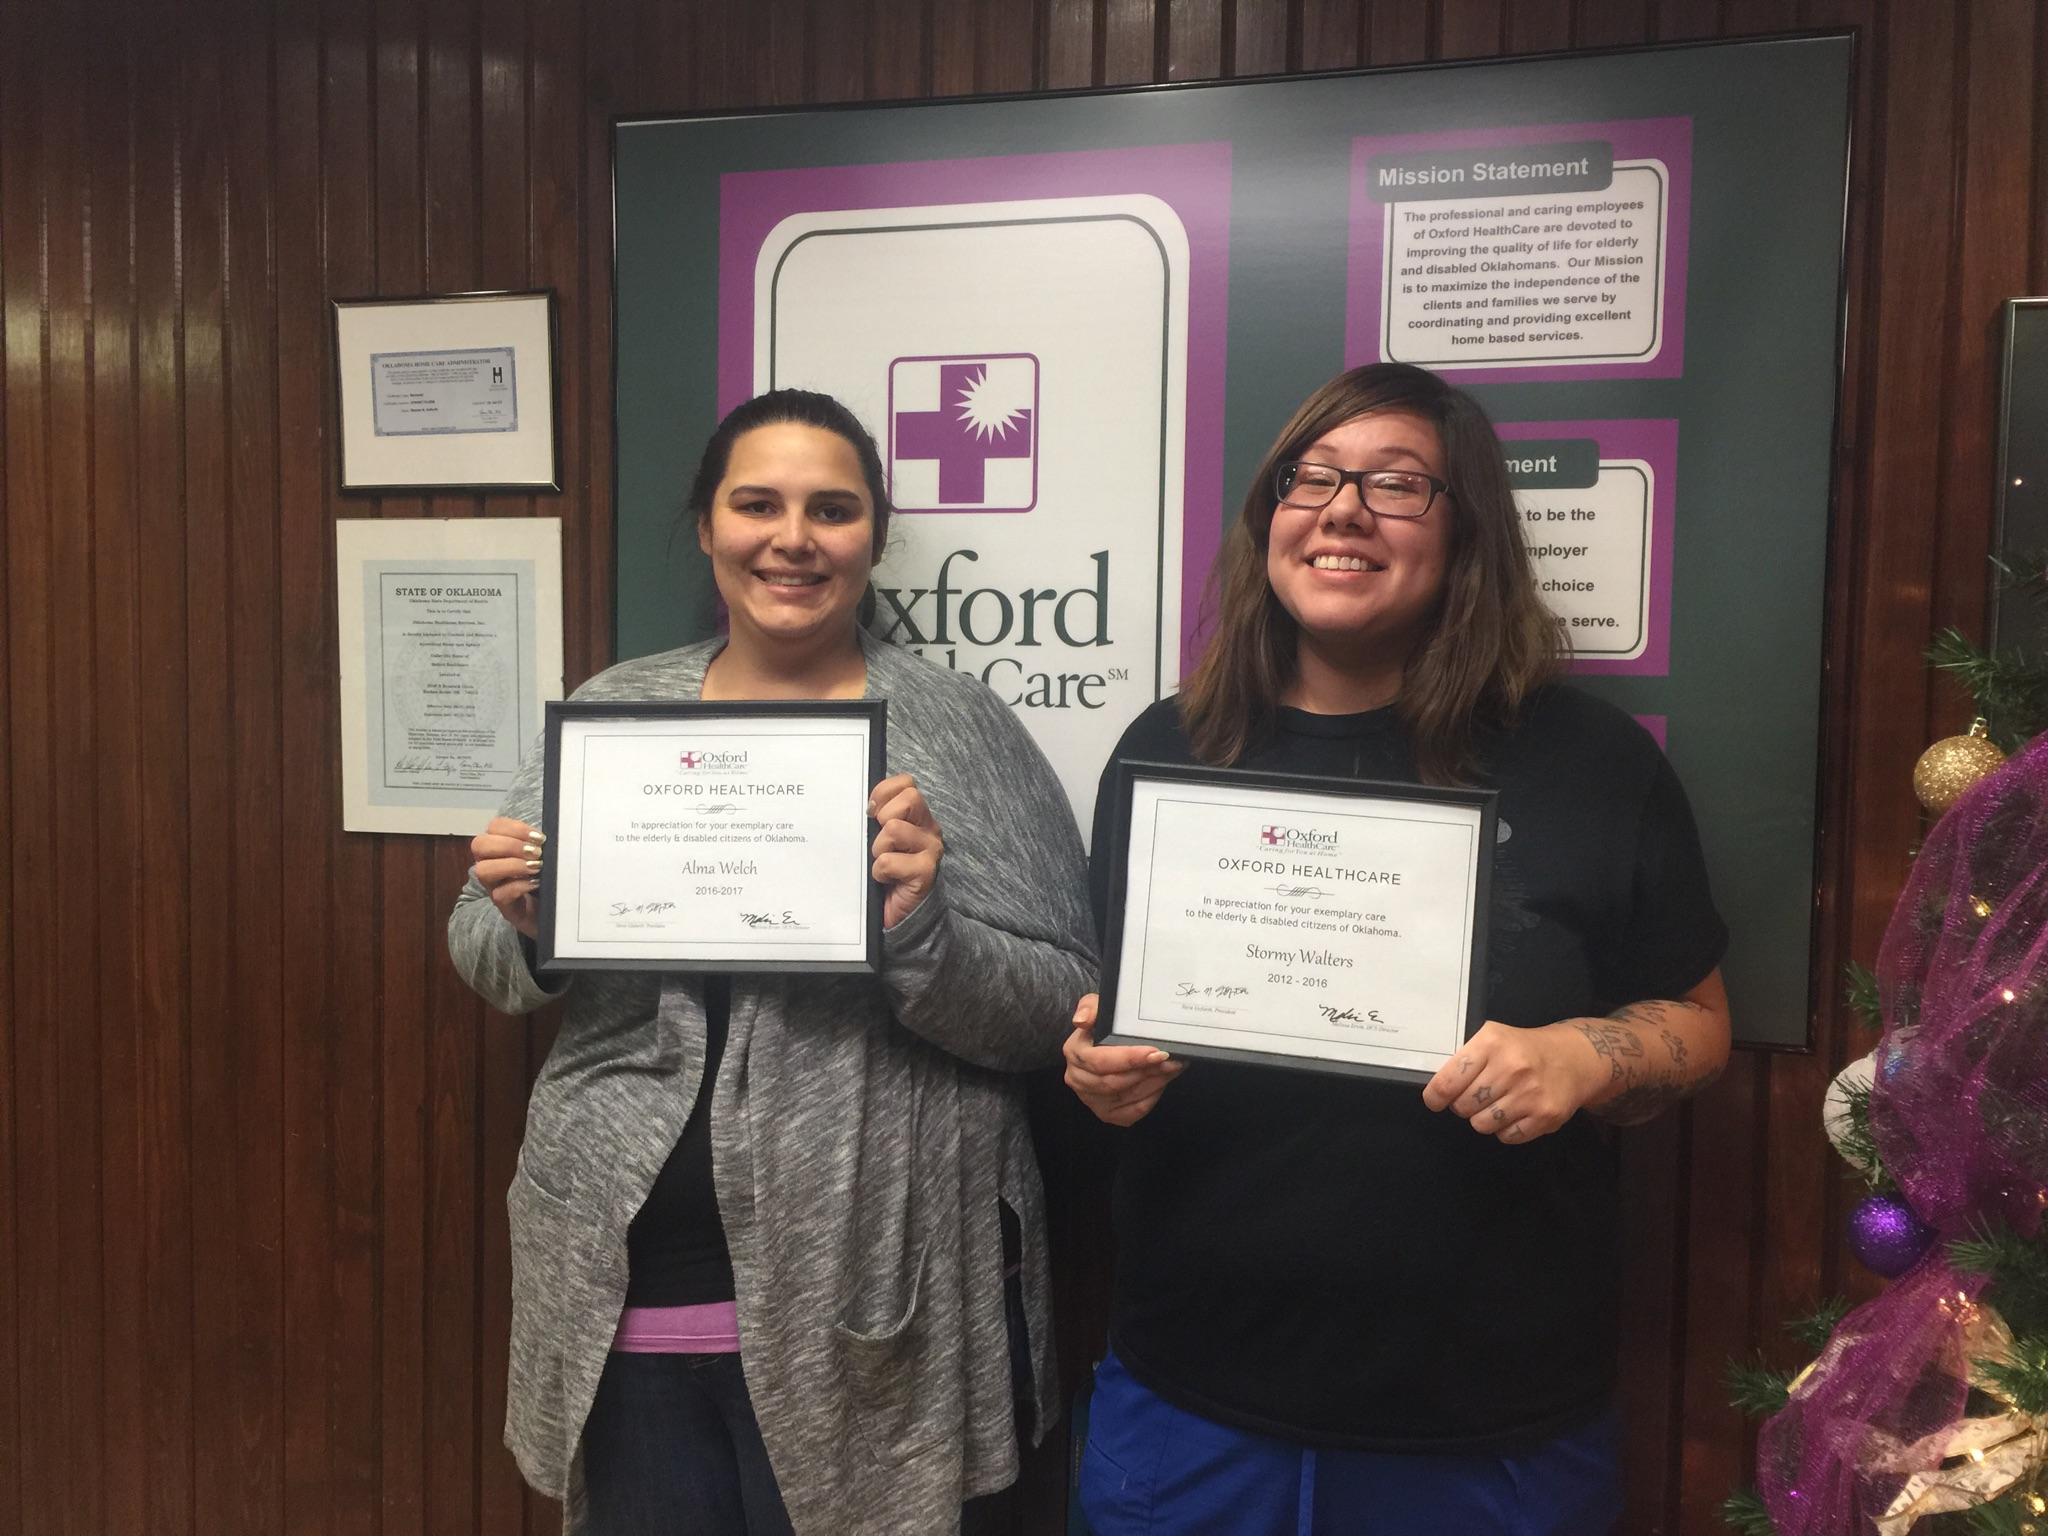 Congratulations to Alma Welch and Stormy Walters for being awarded (two of the four) Outstanding Employees with Oxford HealthCare Private Services for 2016! We appreciate all that you do for us!